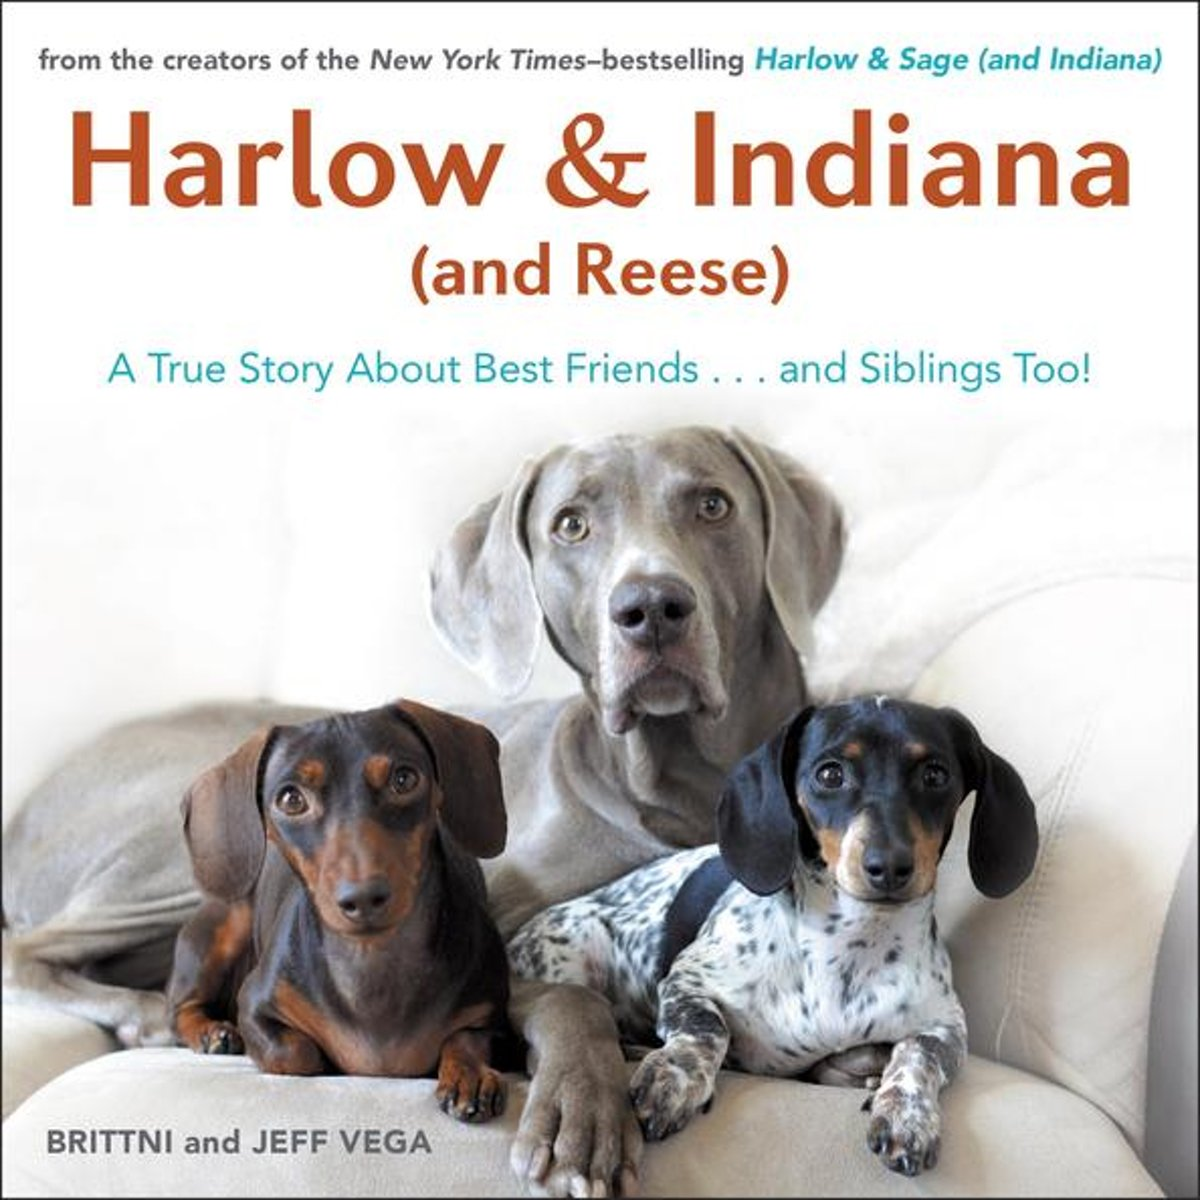 Harlow & Indiana (and Reese)